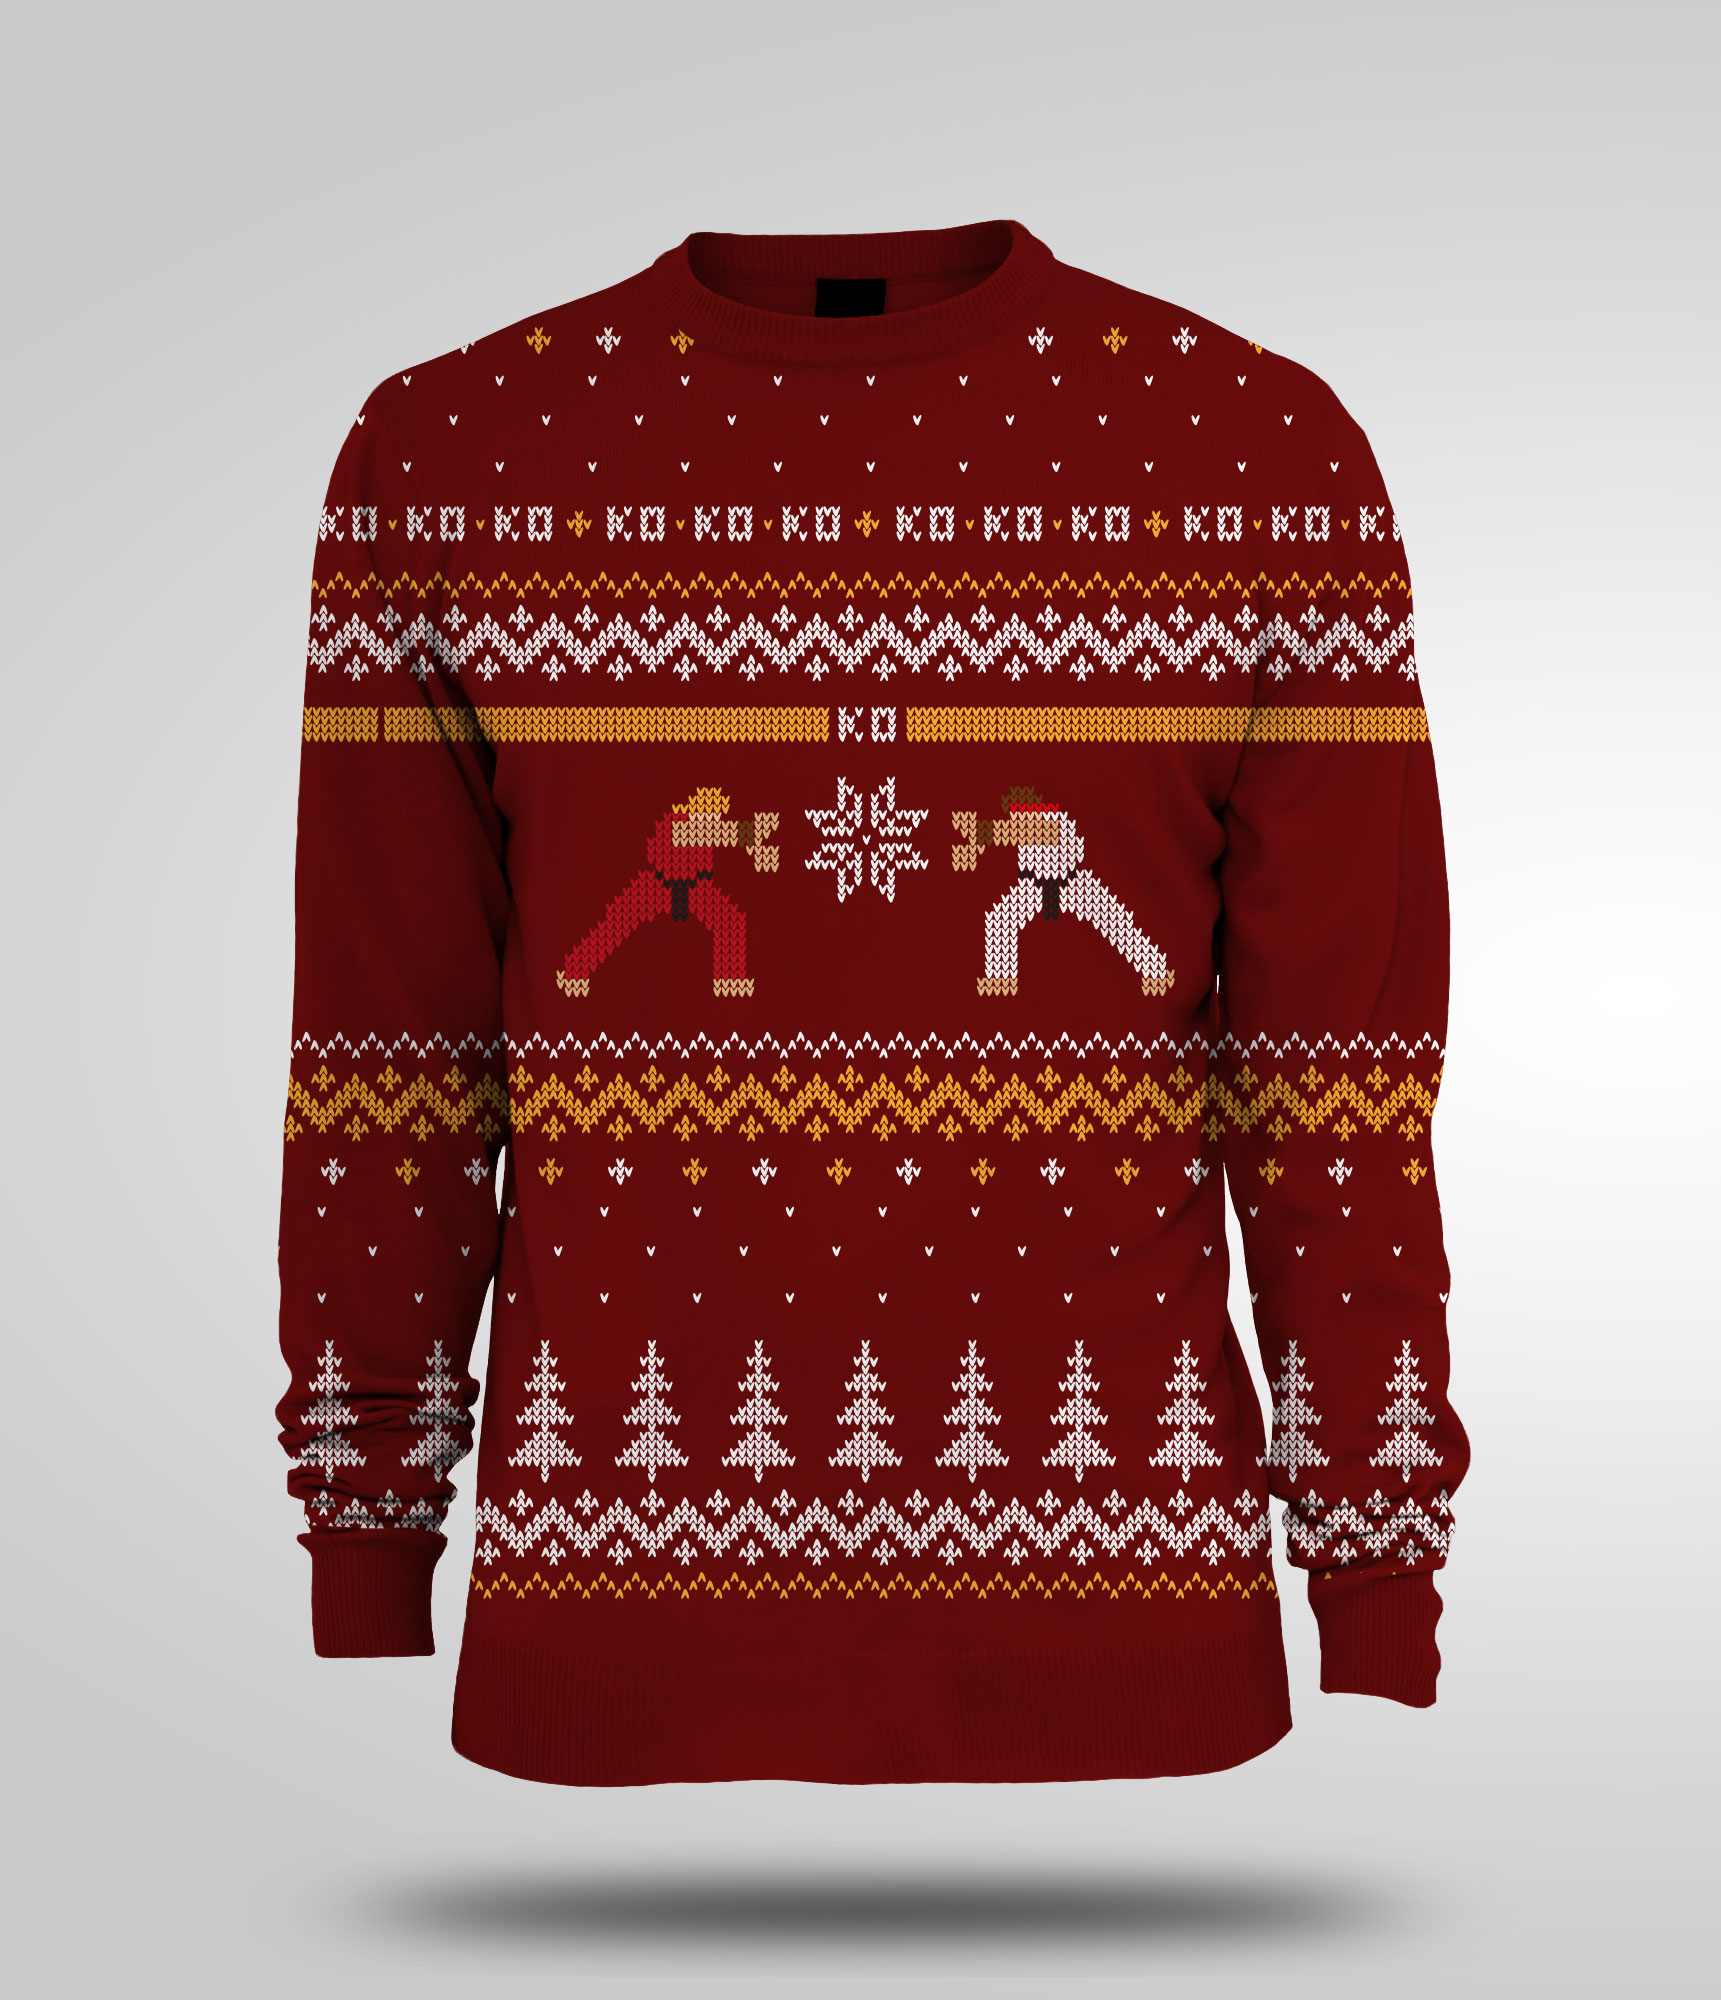 Hedgehog Christmas Jumper.Make Christmas Extra Special With These Awesome Jumpers From